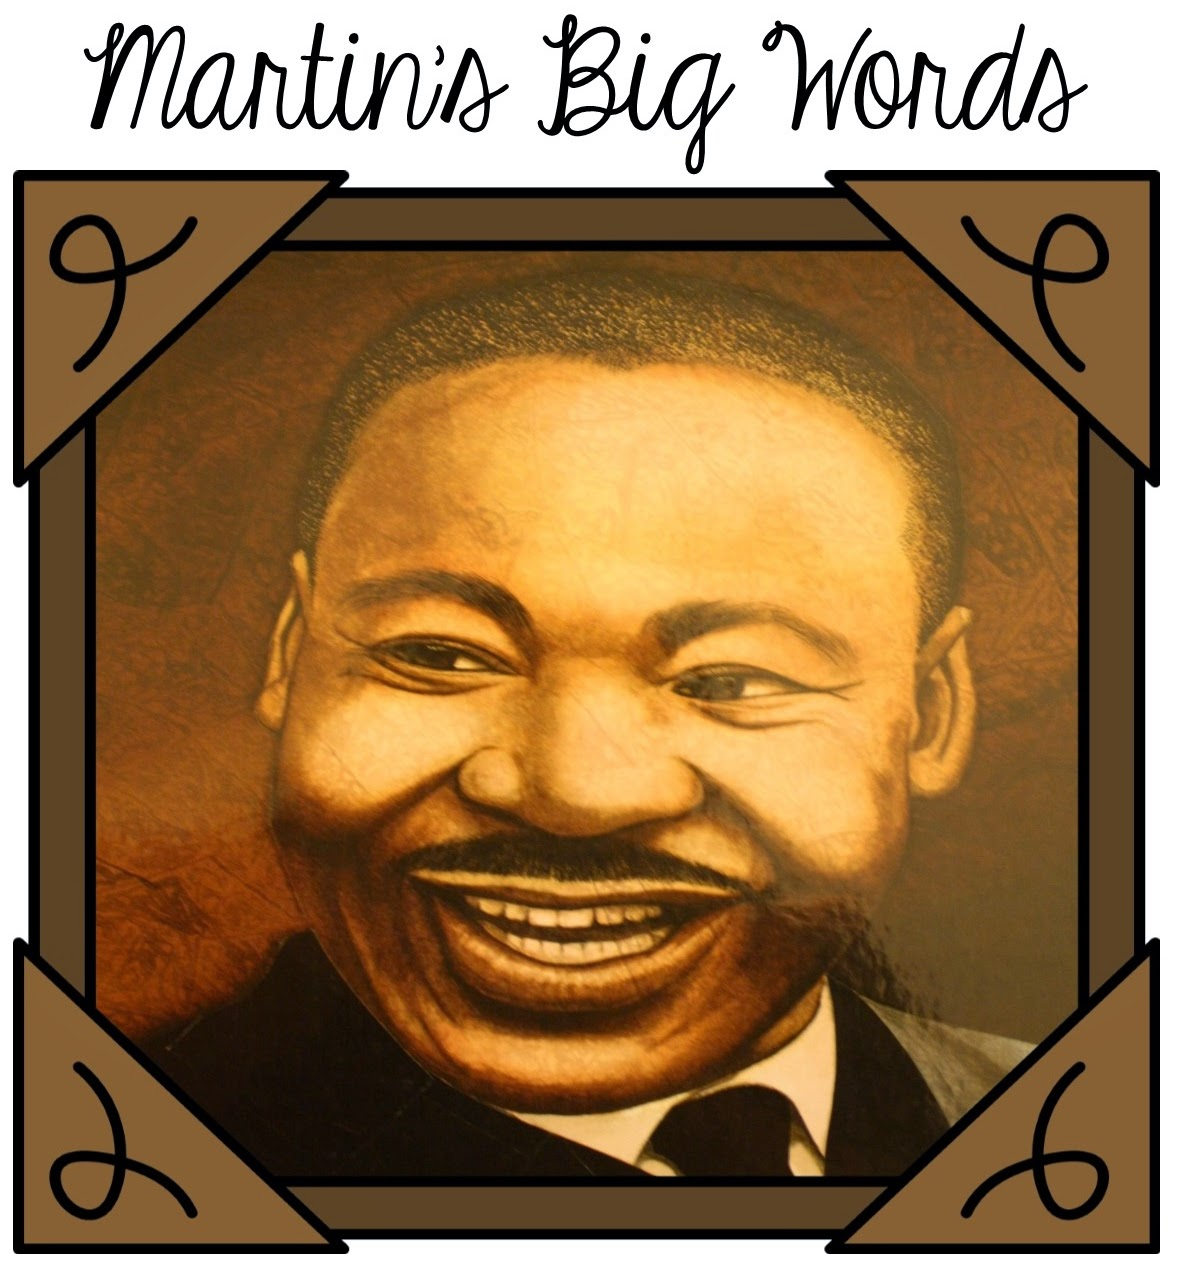 http://www.amazon.com/Martins-Big-Words-Martin-Luther/dp/1423106350/ref=sr_1_1?ie=UTF8&qid=1421621734&sr=8-1&keywords=Martin%27s+big+words